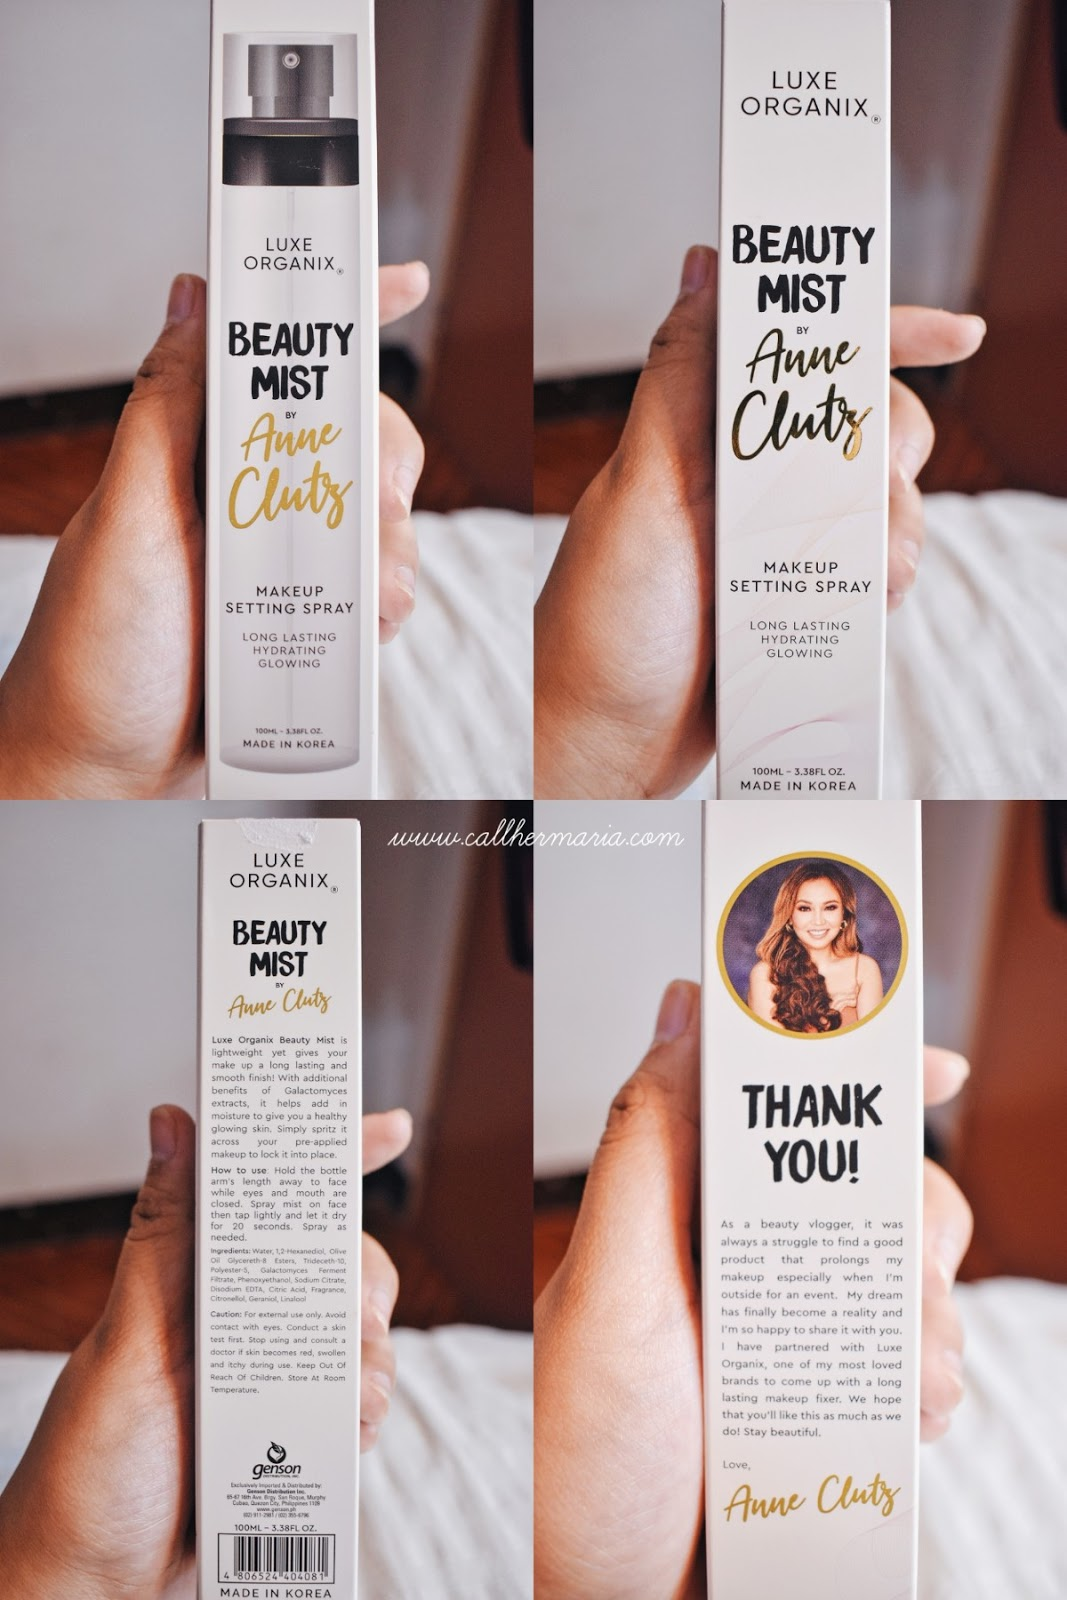 Luxe Organix Beauty Mist by Anne Clutz Review + Wear Test